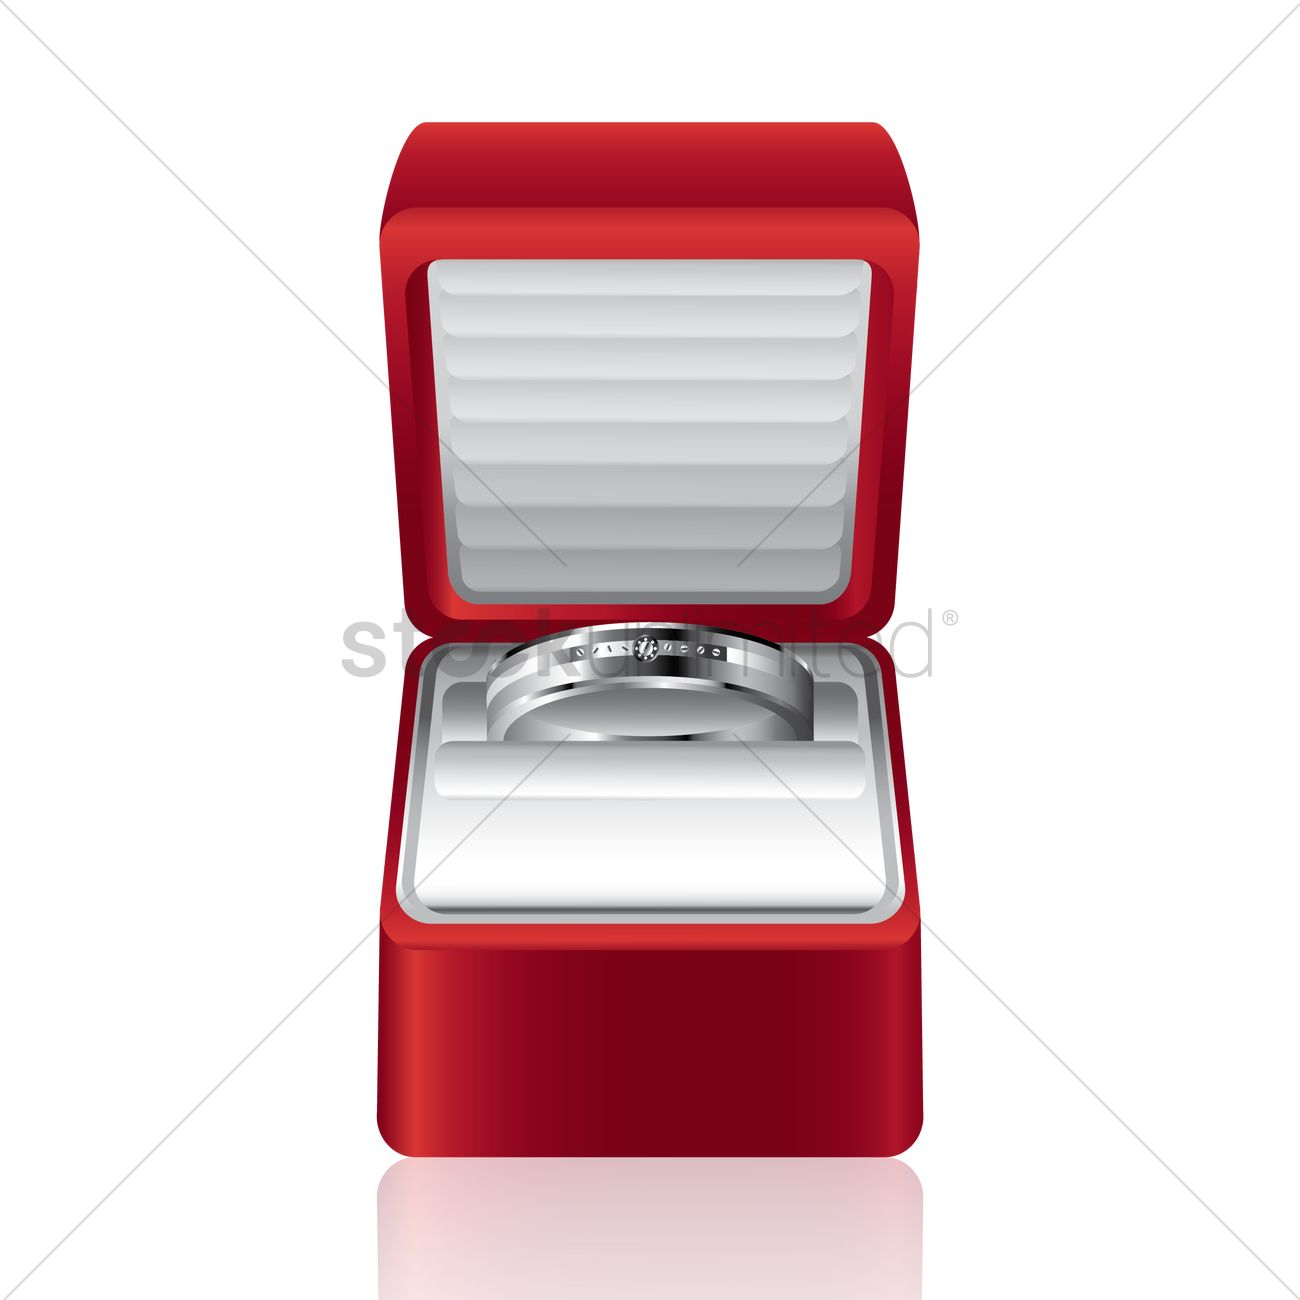 Engagement ring in box Vector Image - 1510921 | StockUnlimited